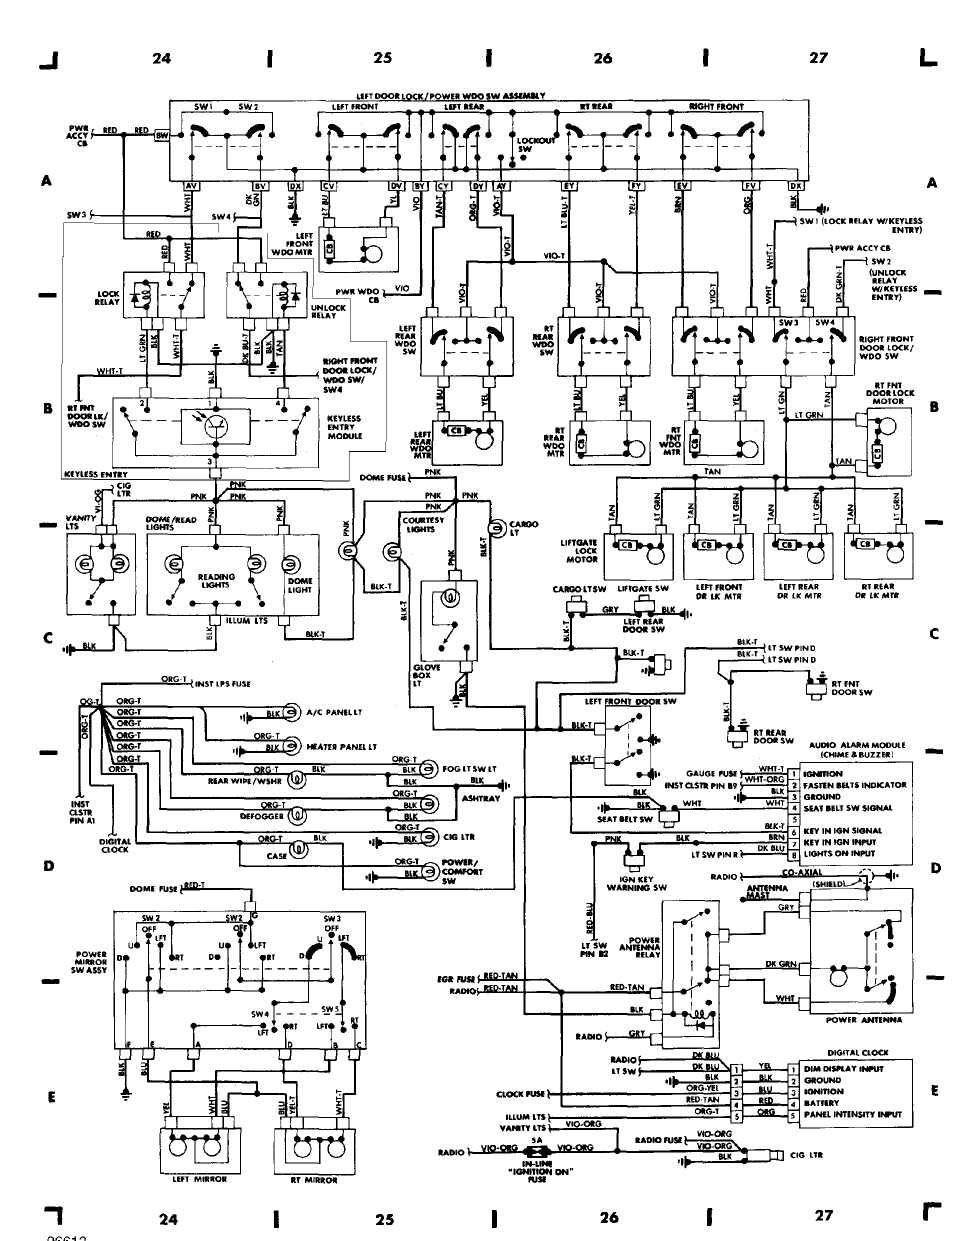 wiring_diagrams_html_61f5e0ad wiring diagrams 1984 1991 jeep cherokee (xj) jeep 1990 jeep cherokee fuel pump wiring diagram at nearapp.co